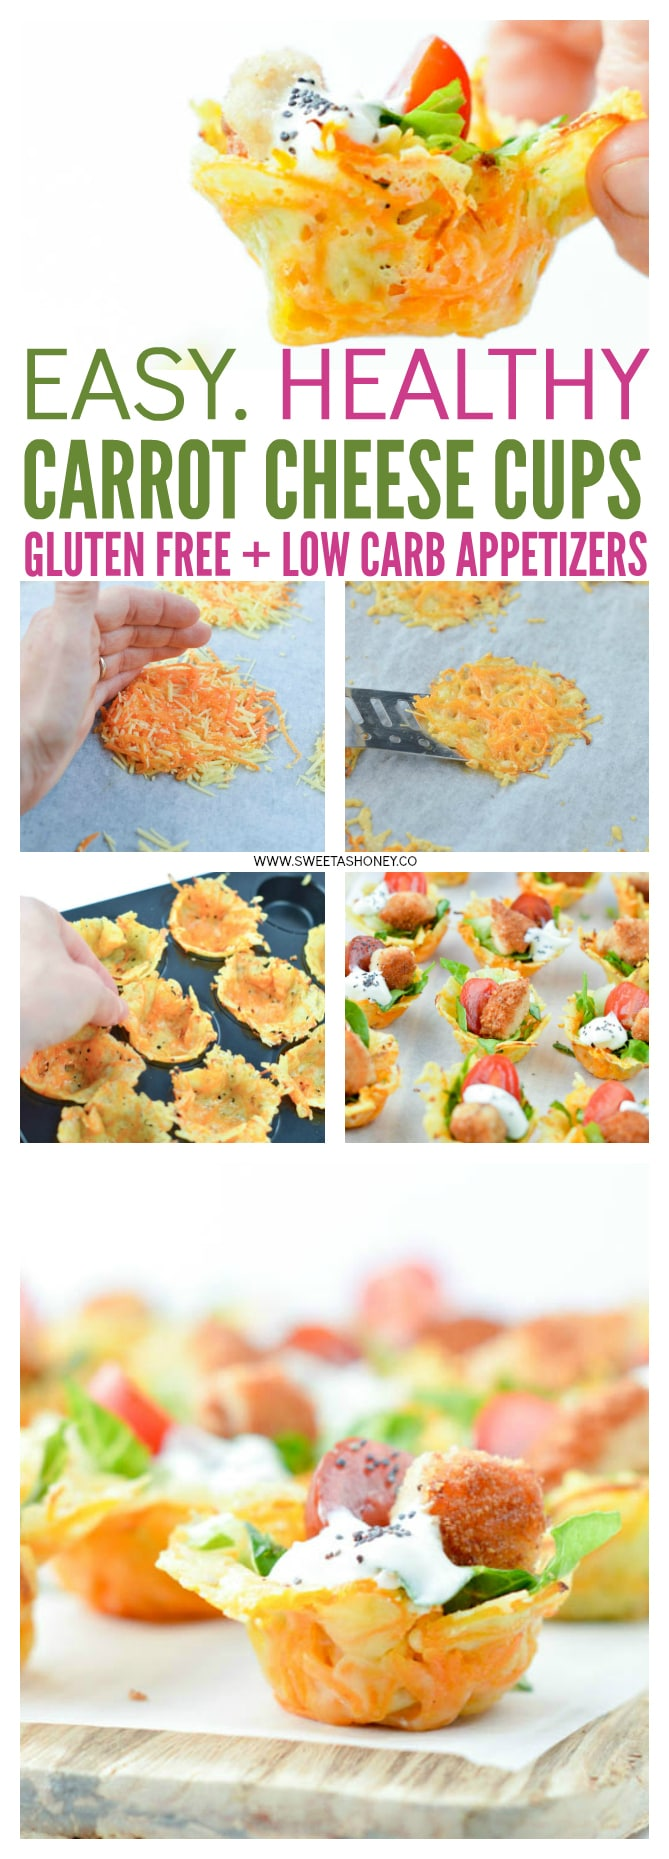 Crispy Carrot Parmesan Cups are perfect bite-size bowls to serve caesar salad. A cute easy healthy appetizer for your next party. Gluten free, low carb.